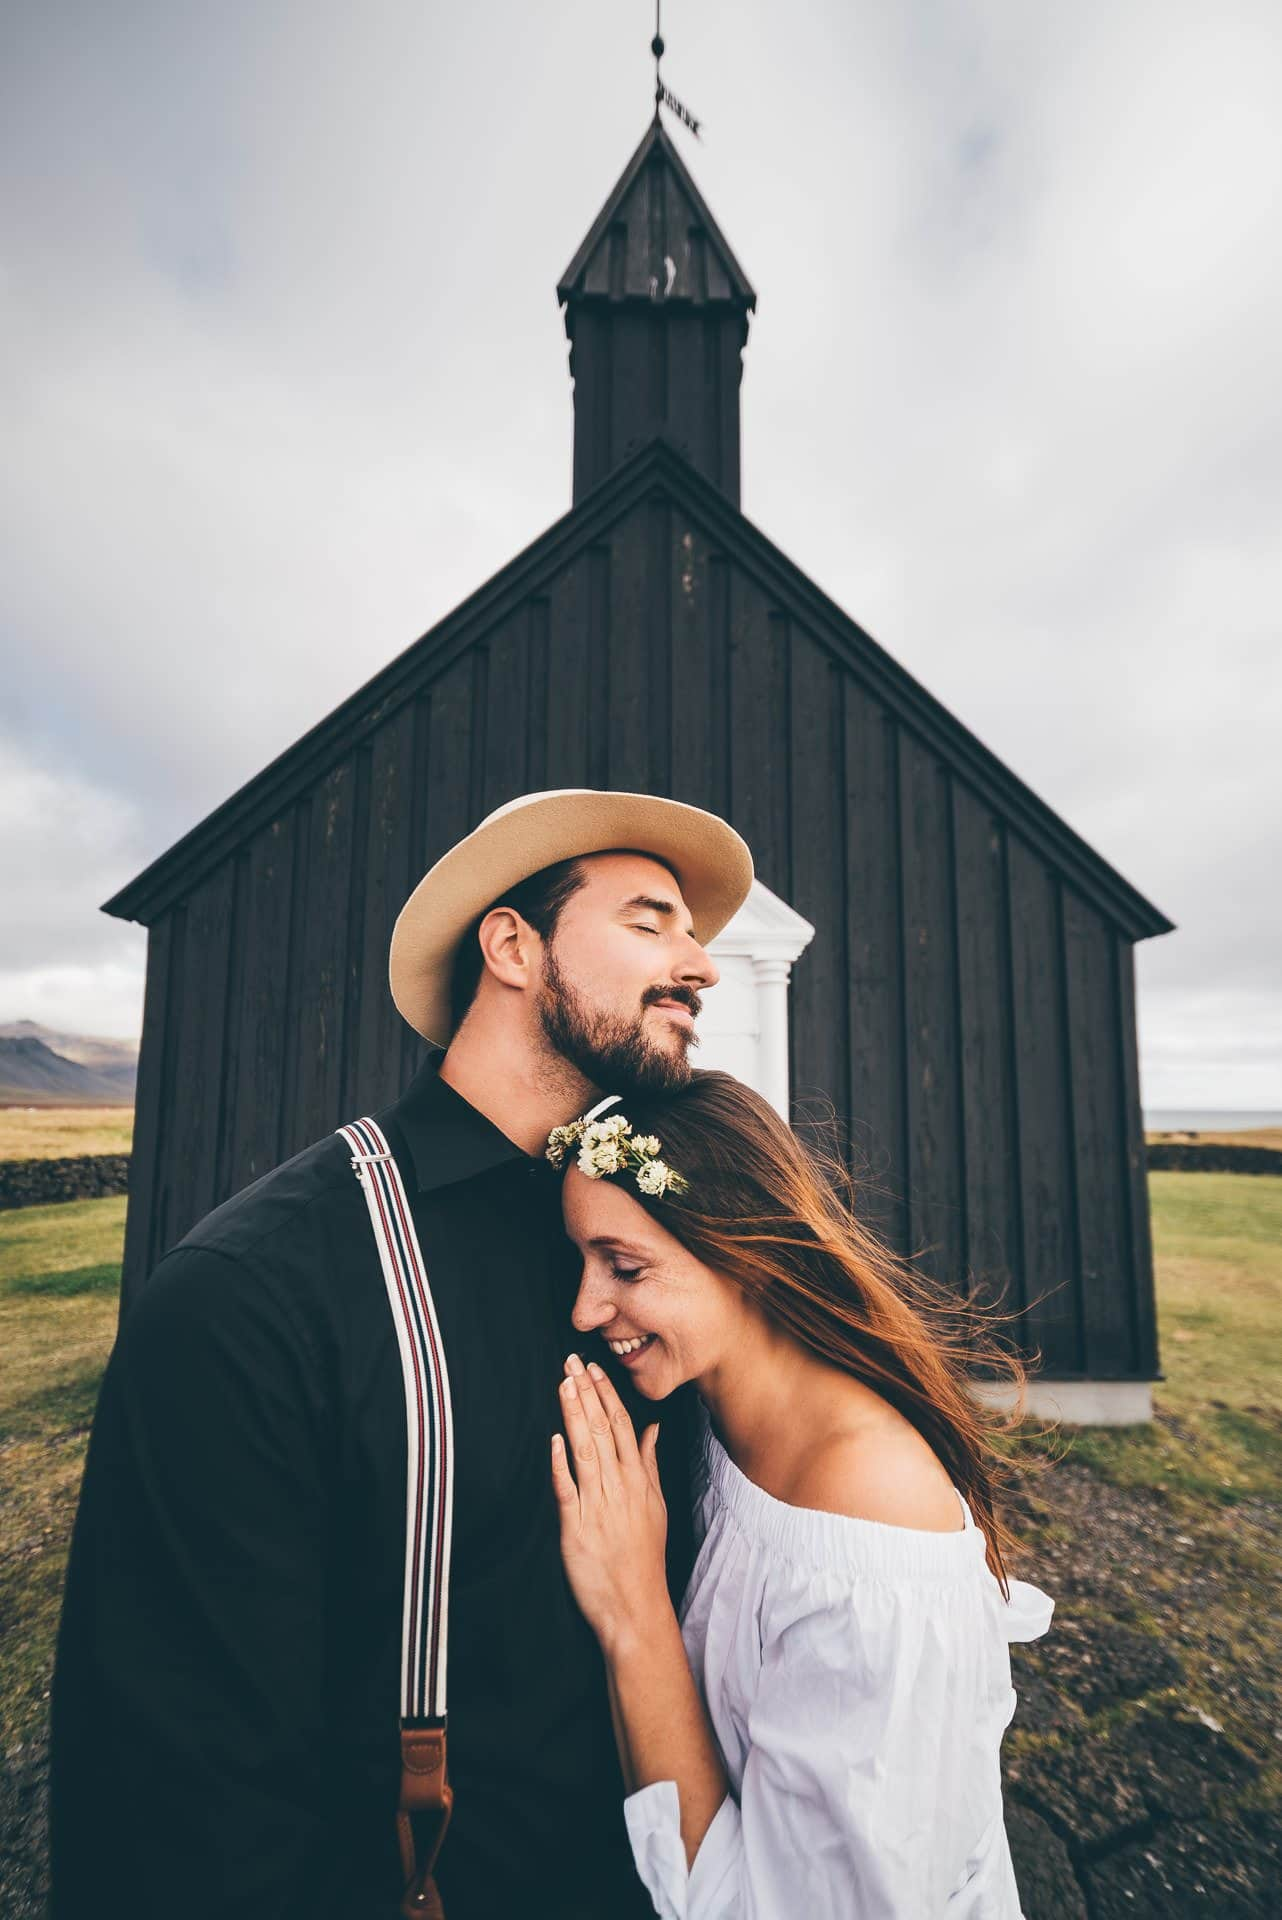 Destination-Wedding-Photographer-Iceland-Budir-BlackChurch-MathiasBrabetz-2